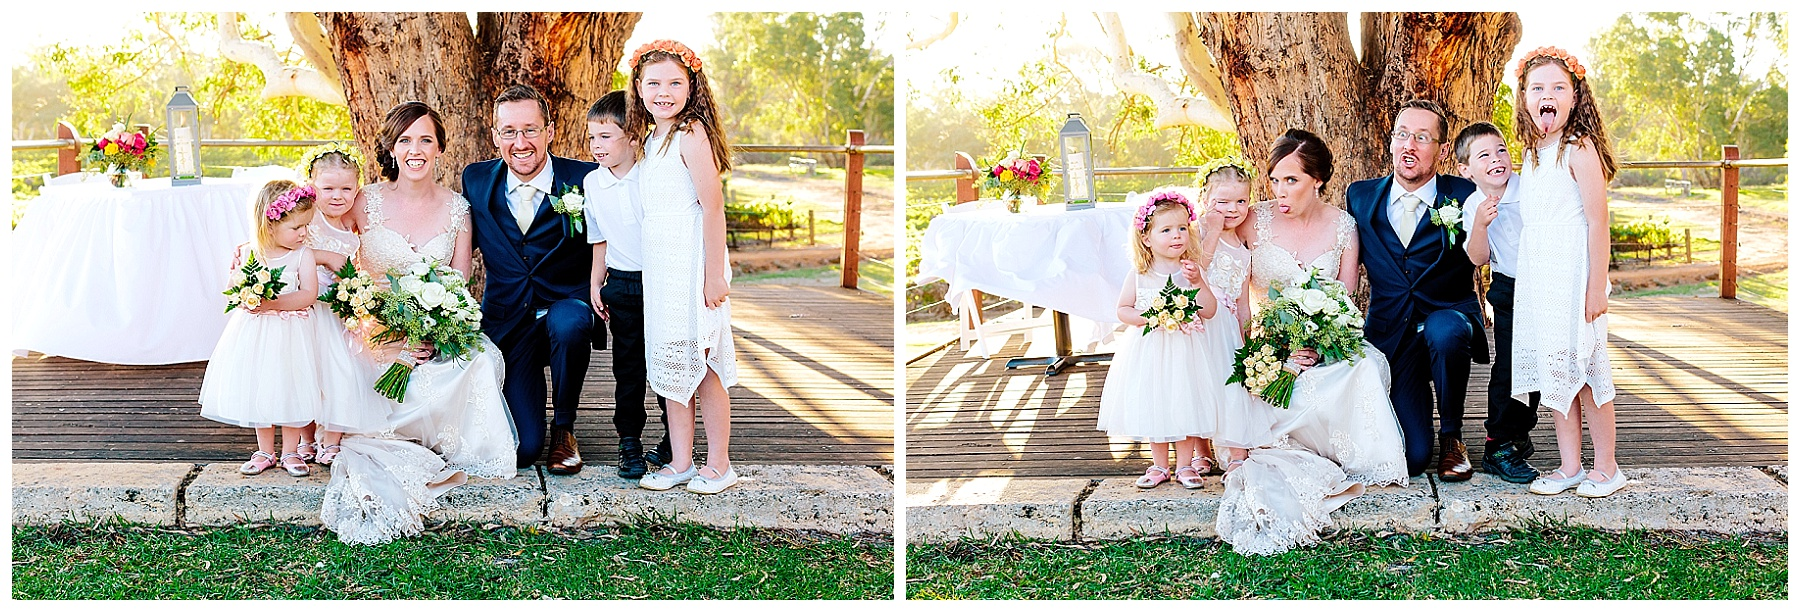 fun wedding photography Perth